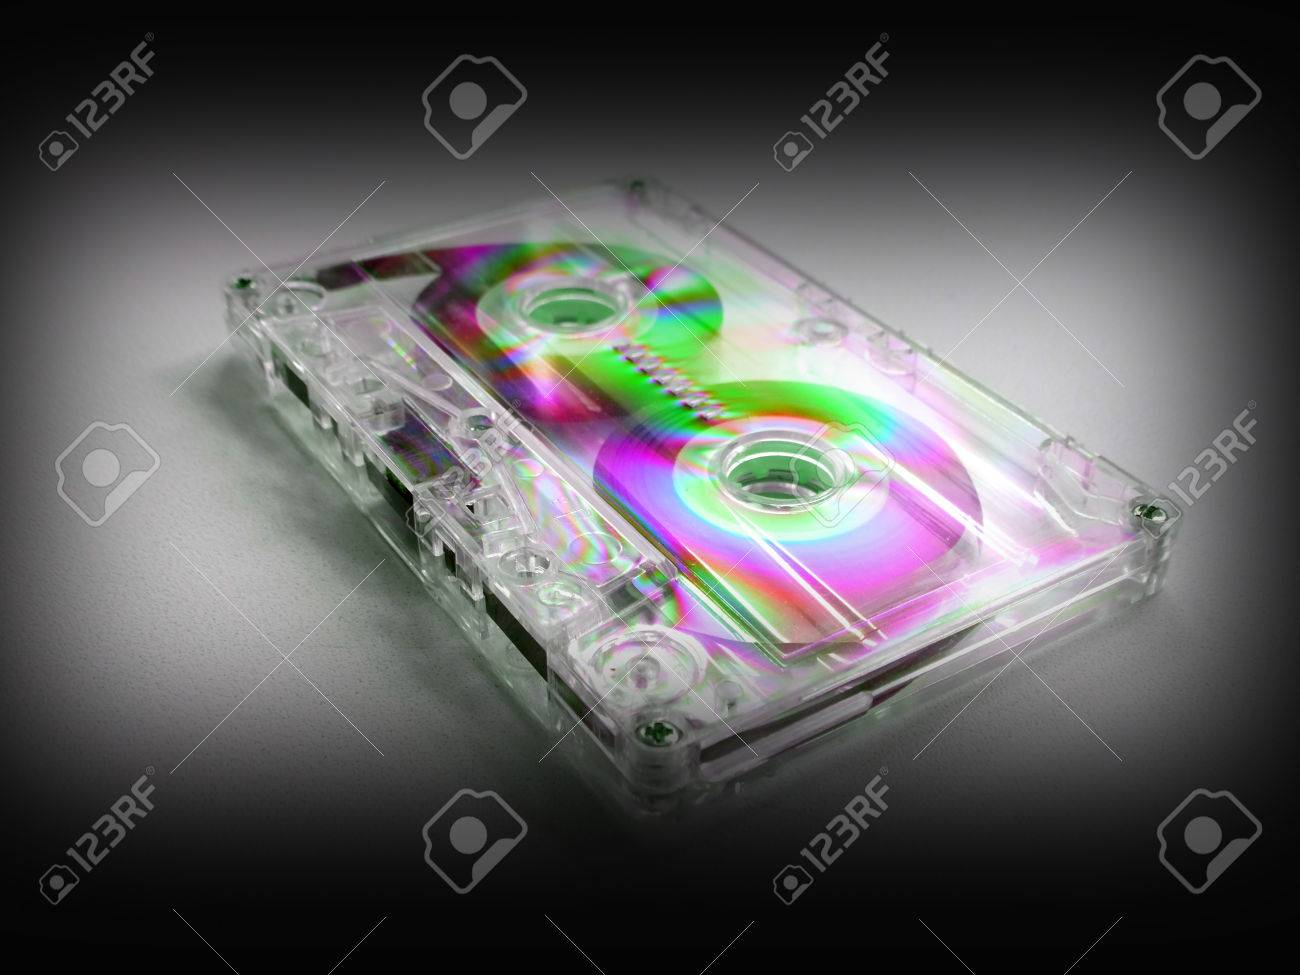 Beautiful Wallpaper Music Tape - 78359687-audio-cassettes-for-recorder-80s-90s-70s-retro-vintage-old-music-time-generation-music-tape-wallpape  Trends_245570.jpg